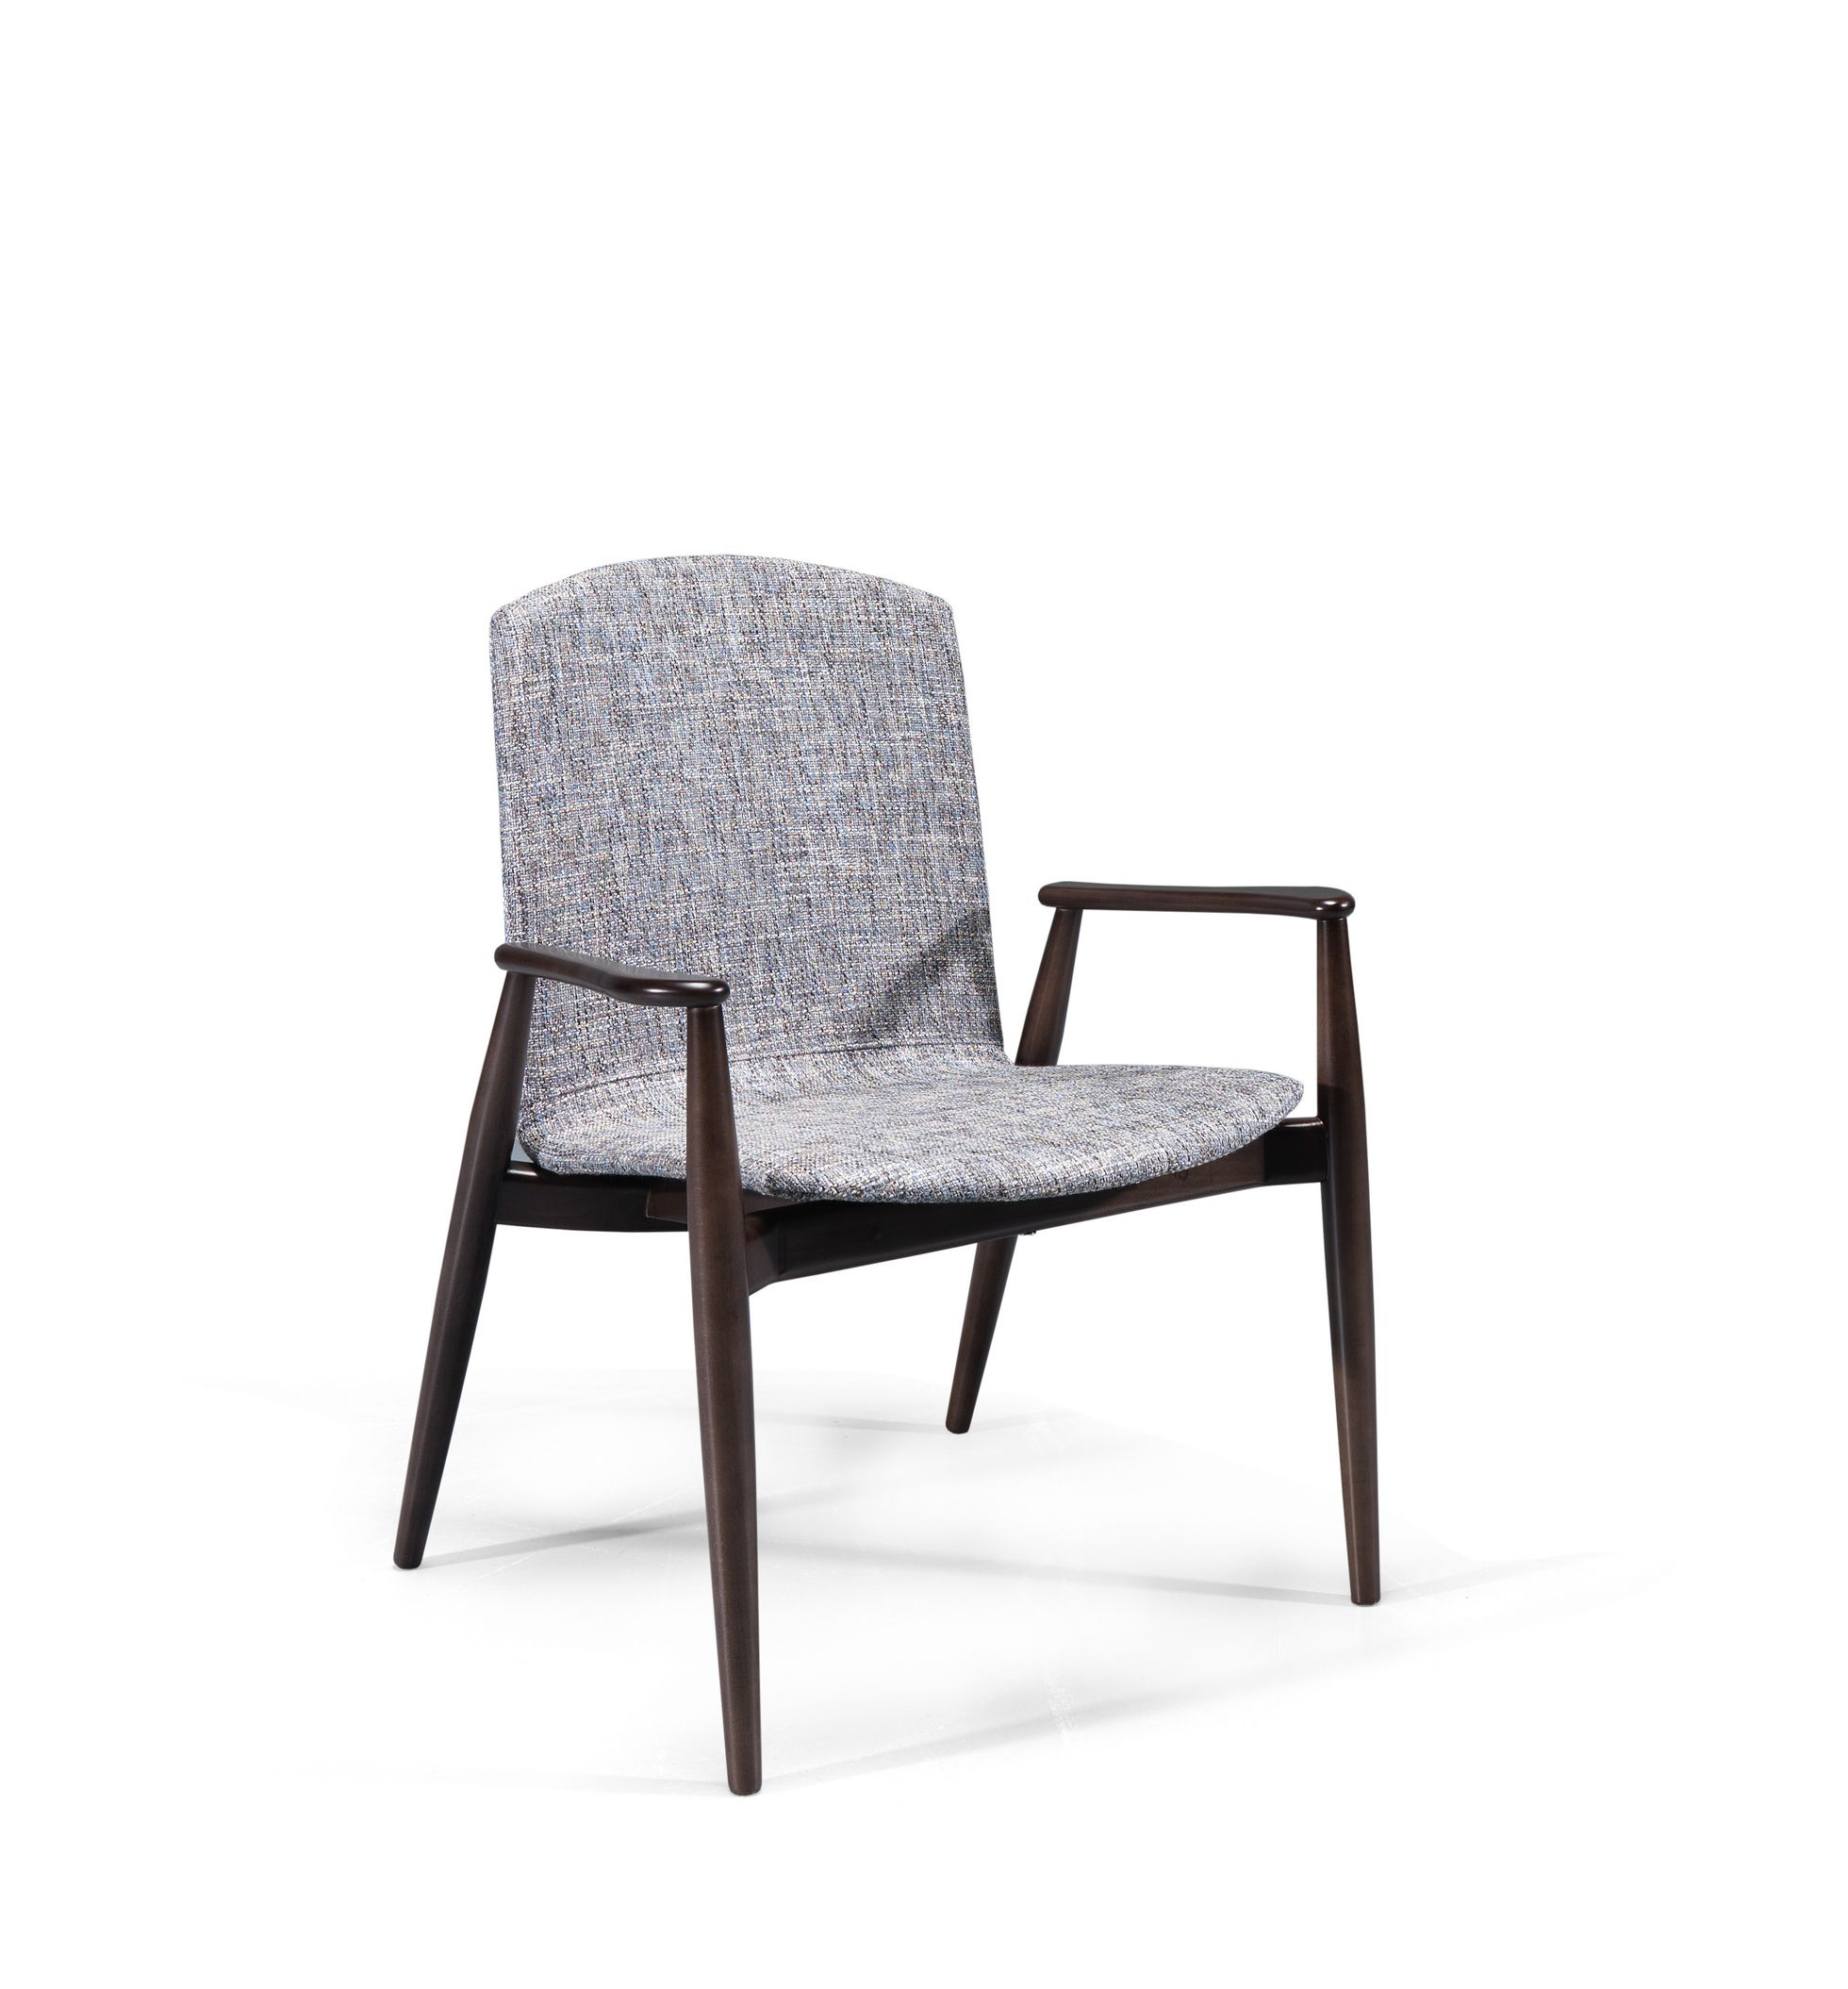 Dining Chair Styles And Names Pedicure Stool Uk Laskasas Vintage Just Like The Name